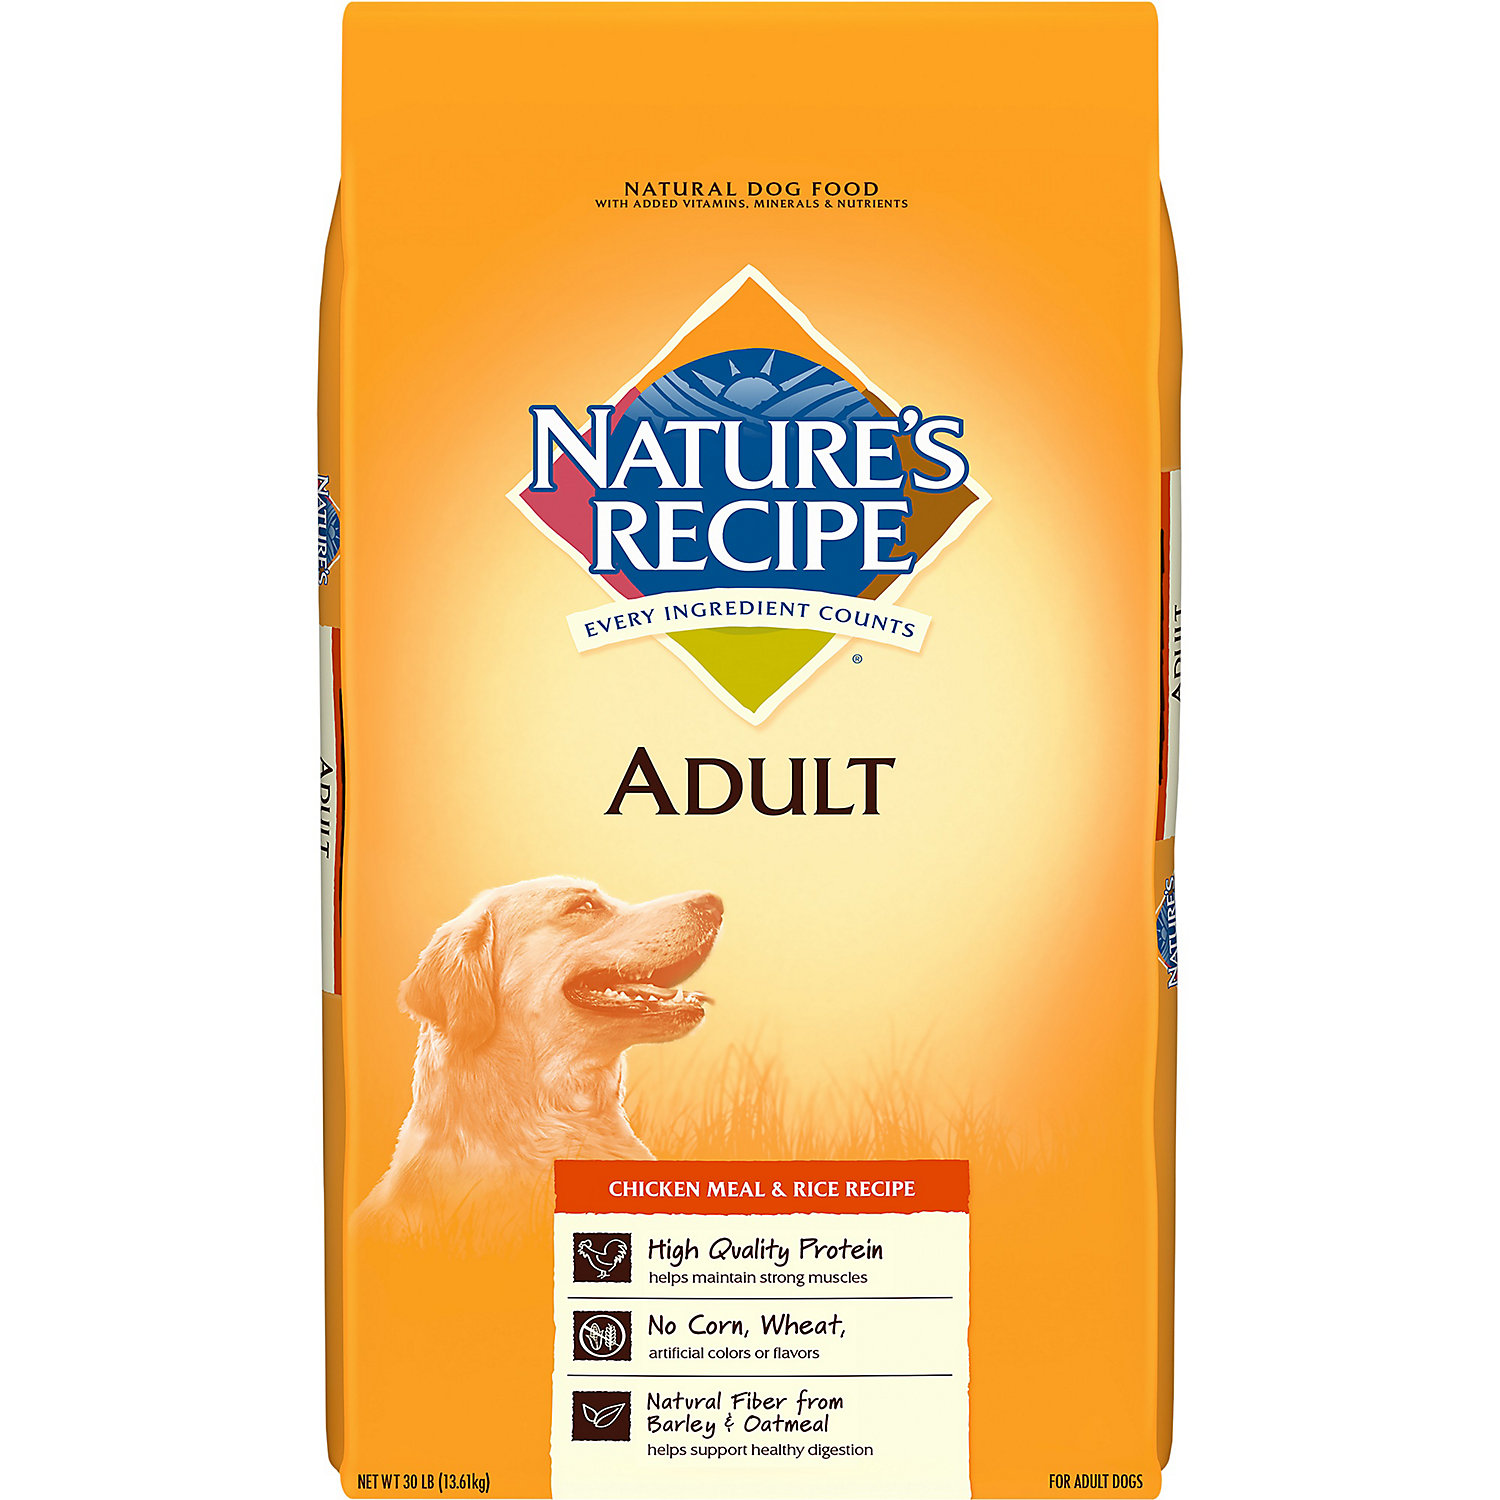 Natures recipe upc barcode for Food barcode